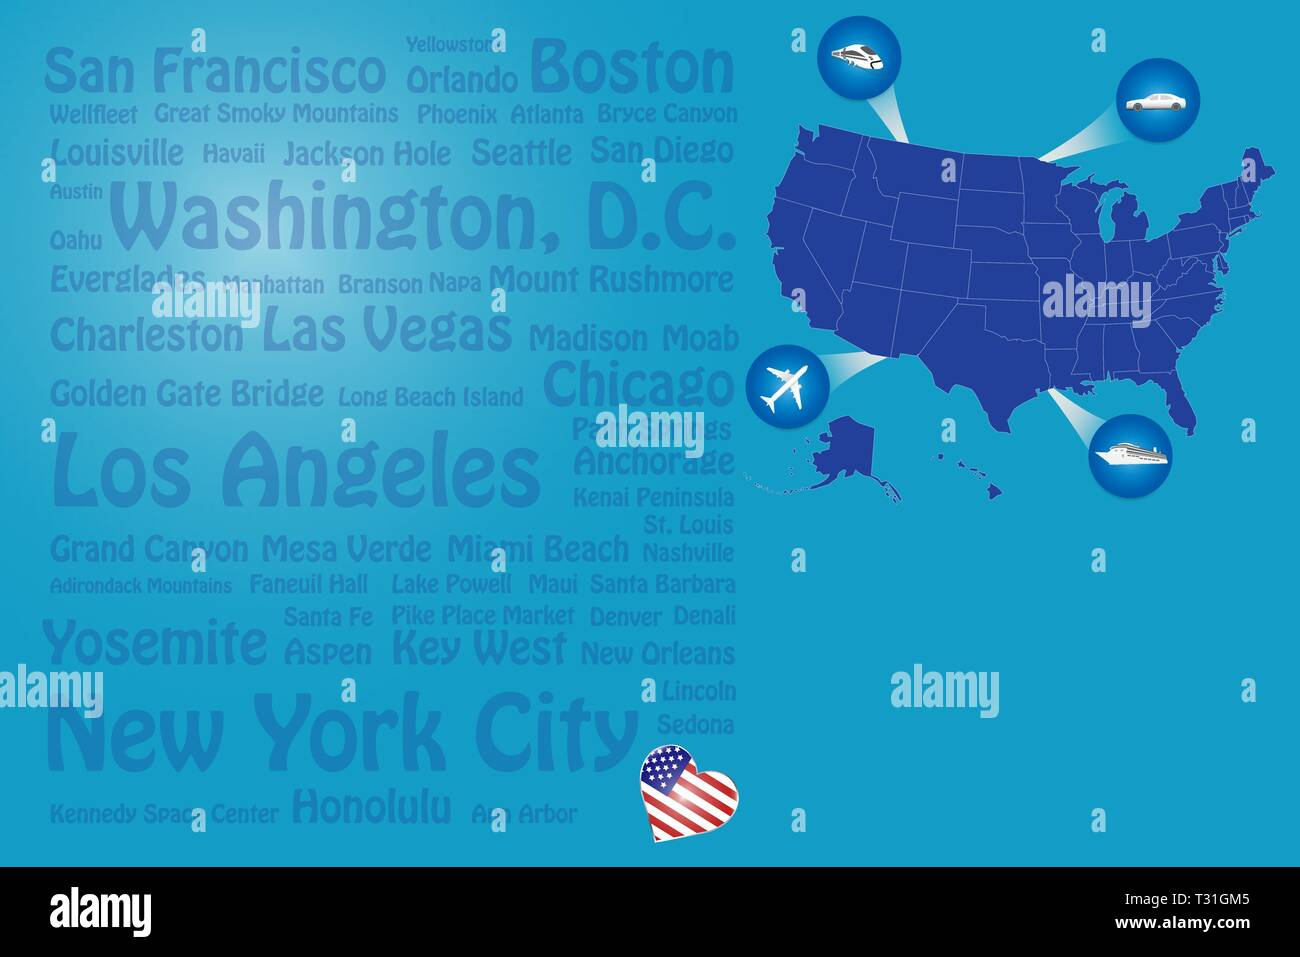 Travel Usa Template Vector Showing The Plane Car Train And Ship - Us-map-with-landmarks